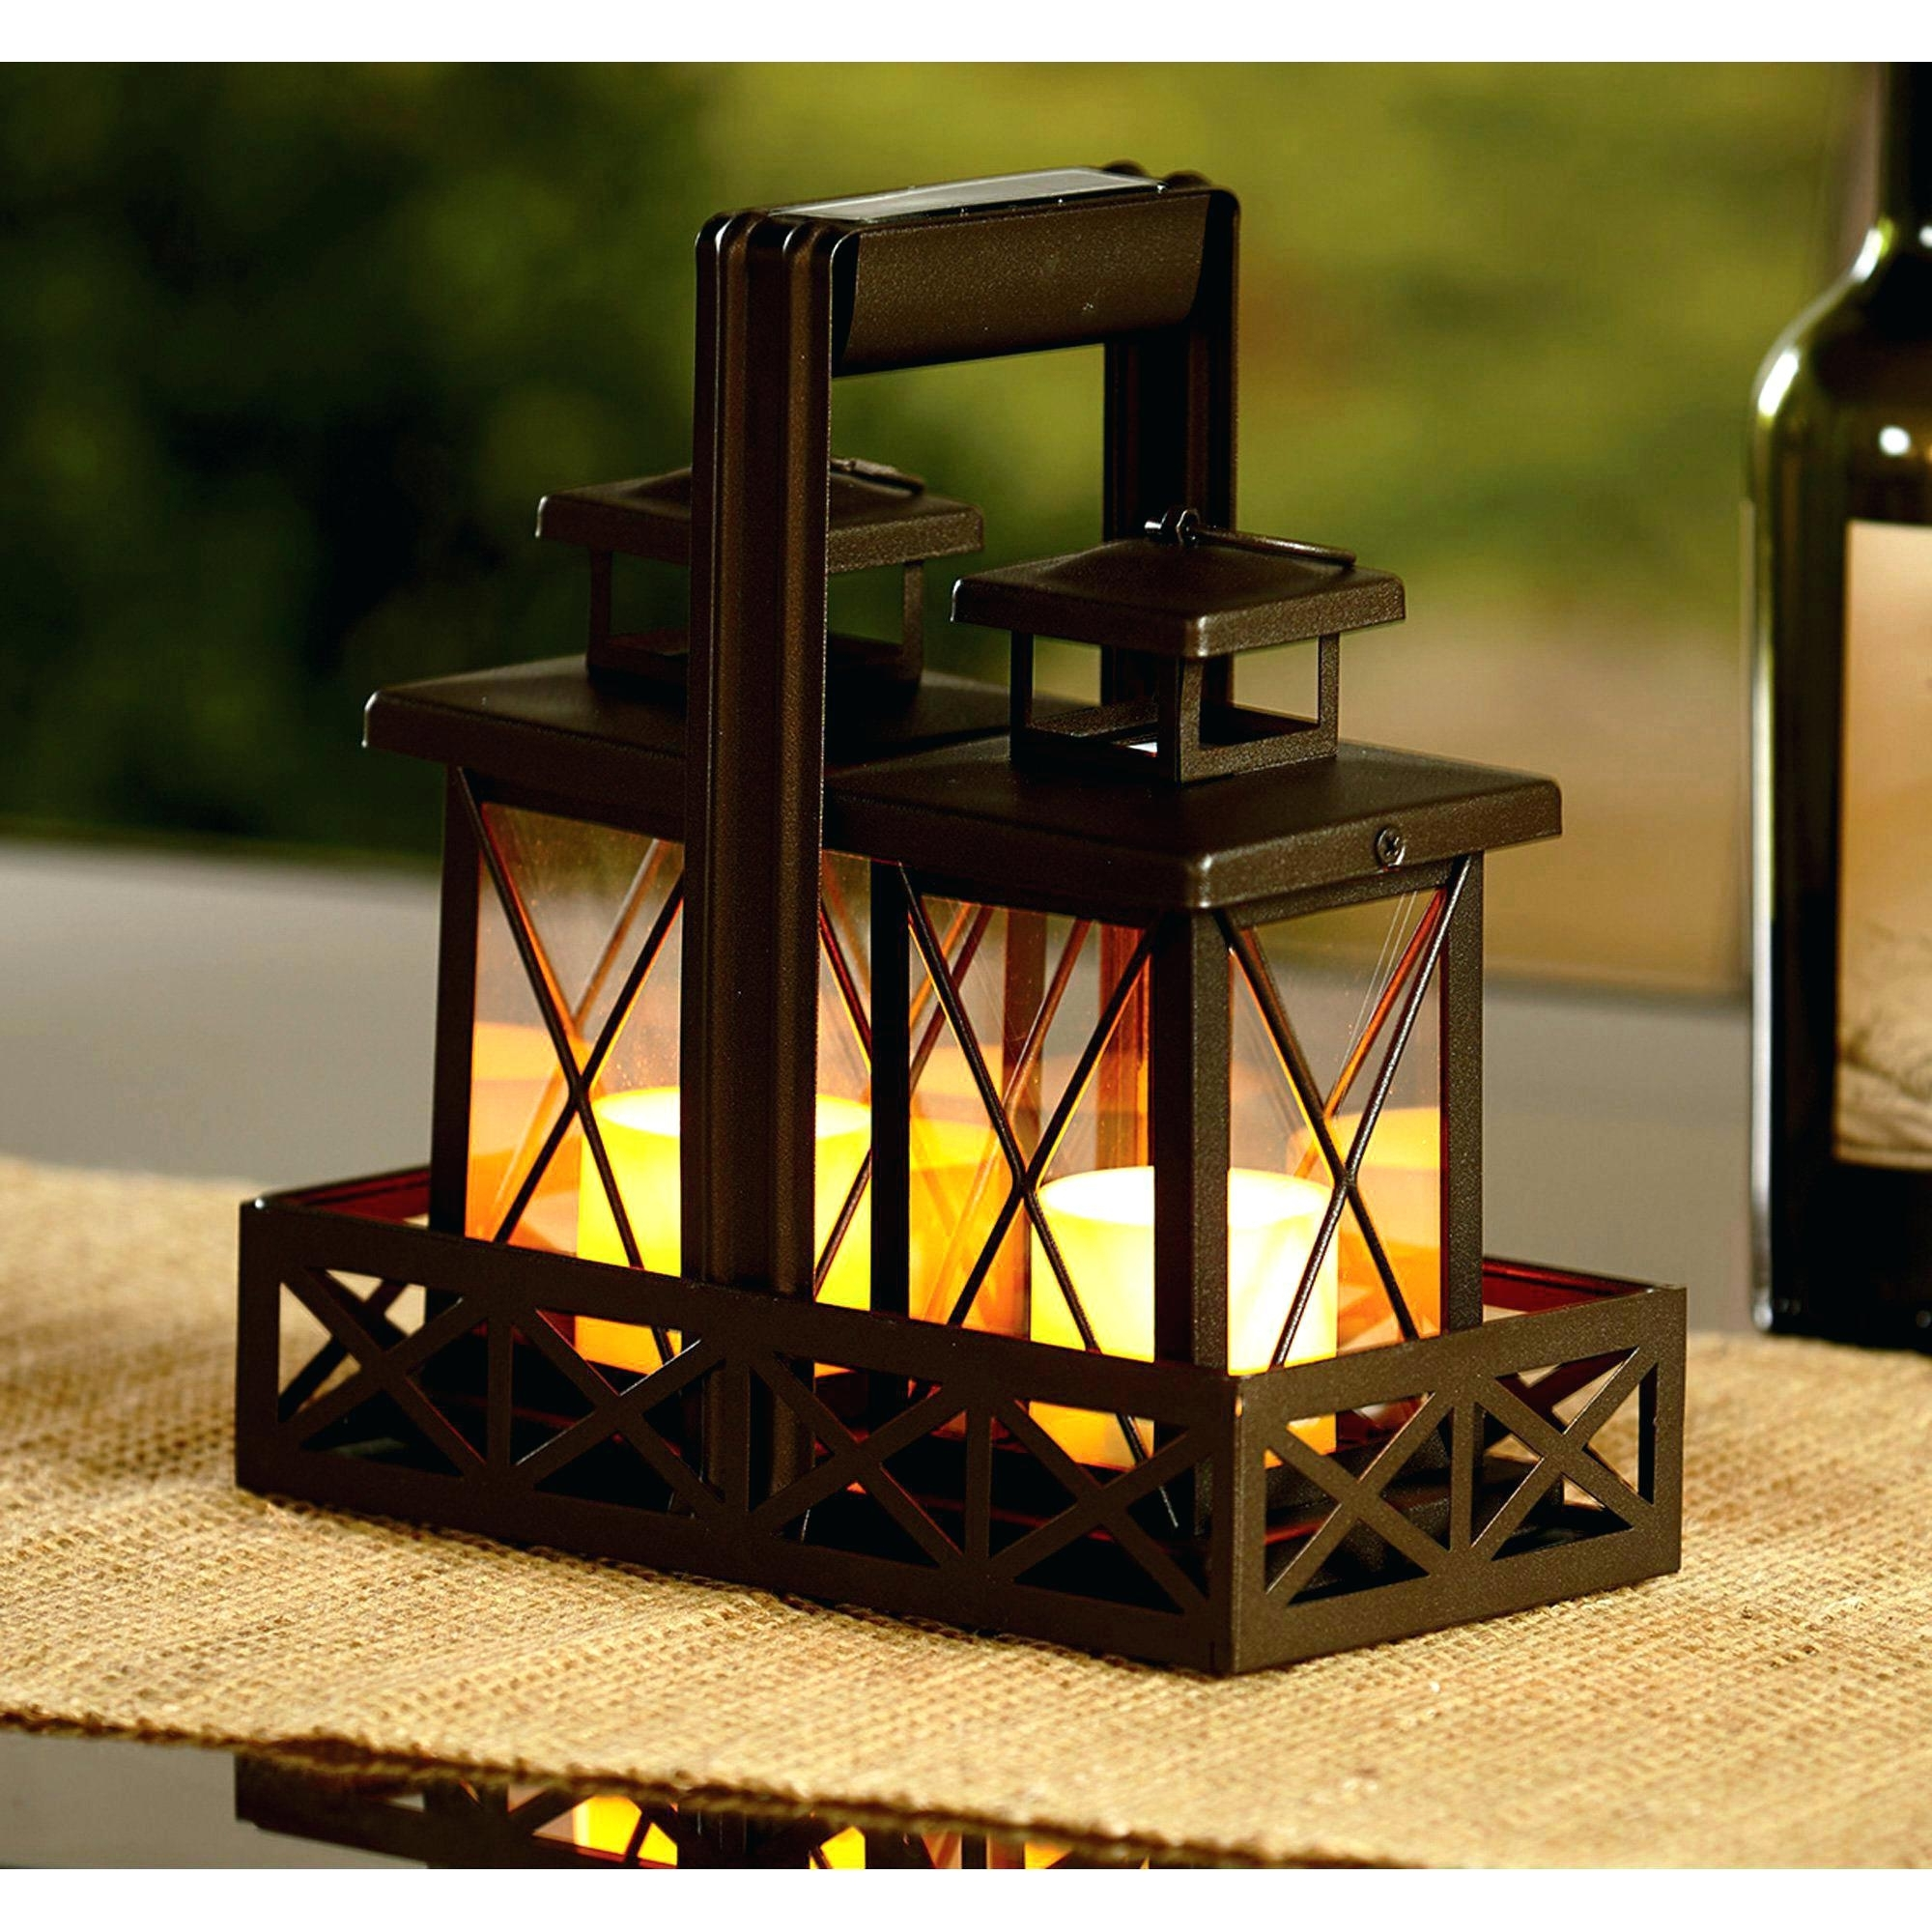 Preferred Outdoor Oil Lamps For Patio Table Sale – Pocketworldcupschedule Inside Outdoor Oil Lanterns For Patio (Gallery 11 of 20)